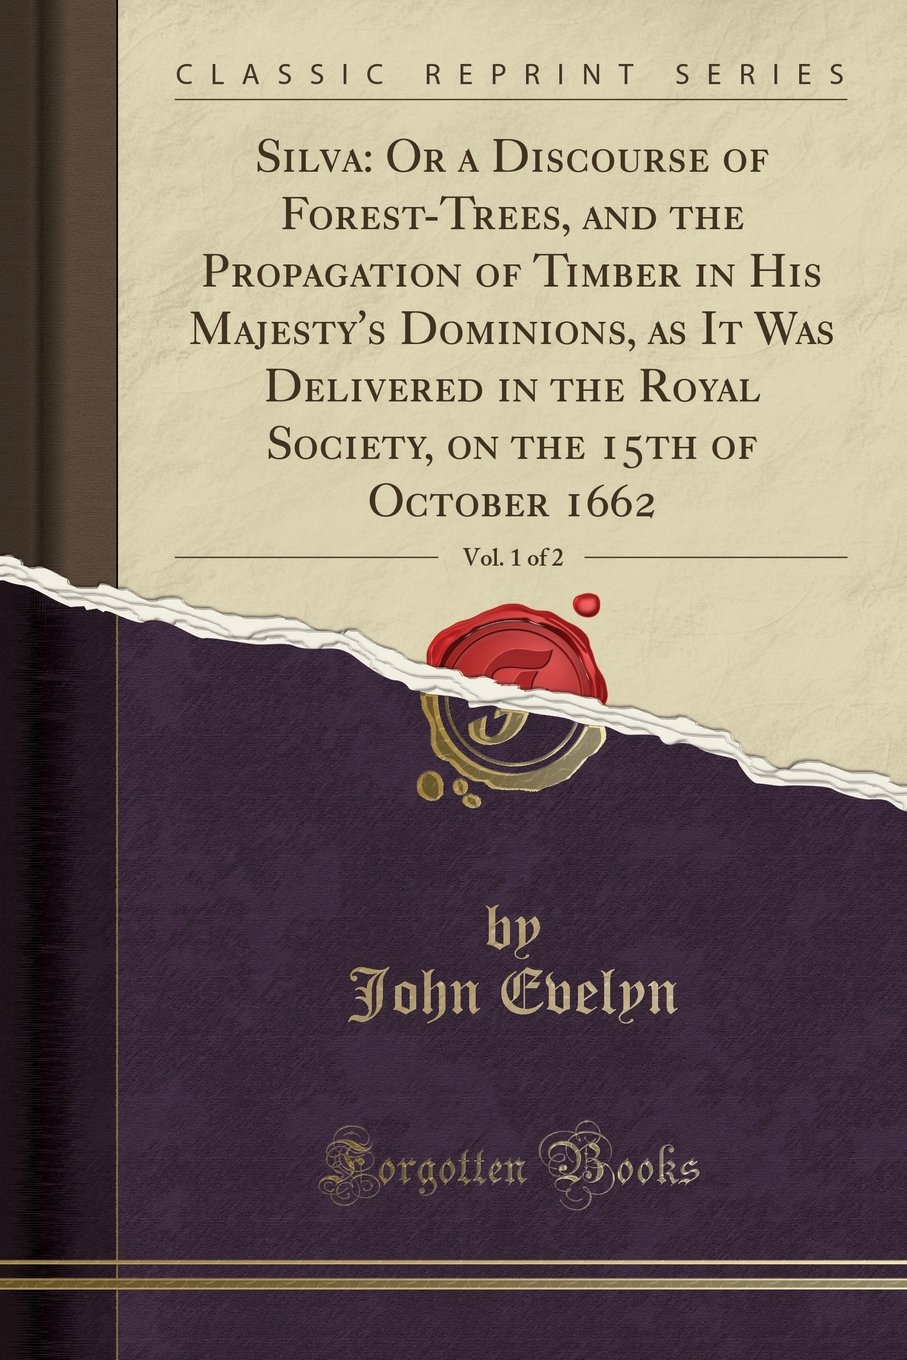 Download Silva: Or a Discourse of Forest-Trees, and the Propagation of Timber in His Majesty's Dominions, as It Was Delivered in the Royal Society, on the 15th of October 1662, Vol. 1 of 2 (Classic Reprint) pdf